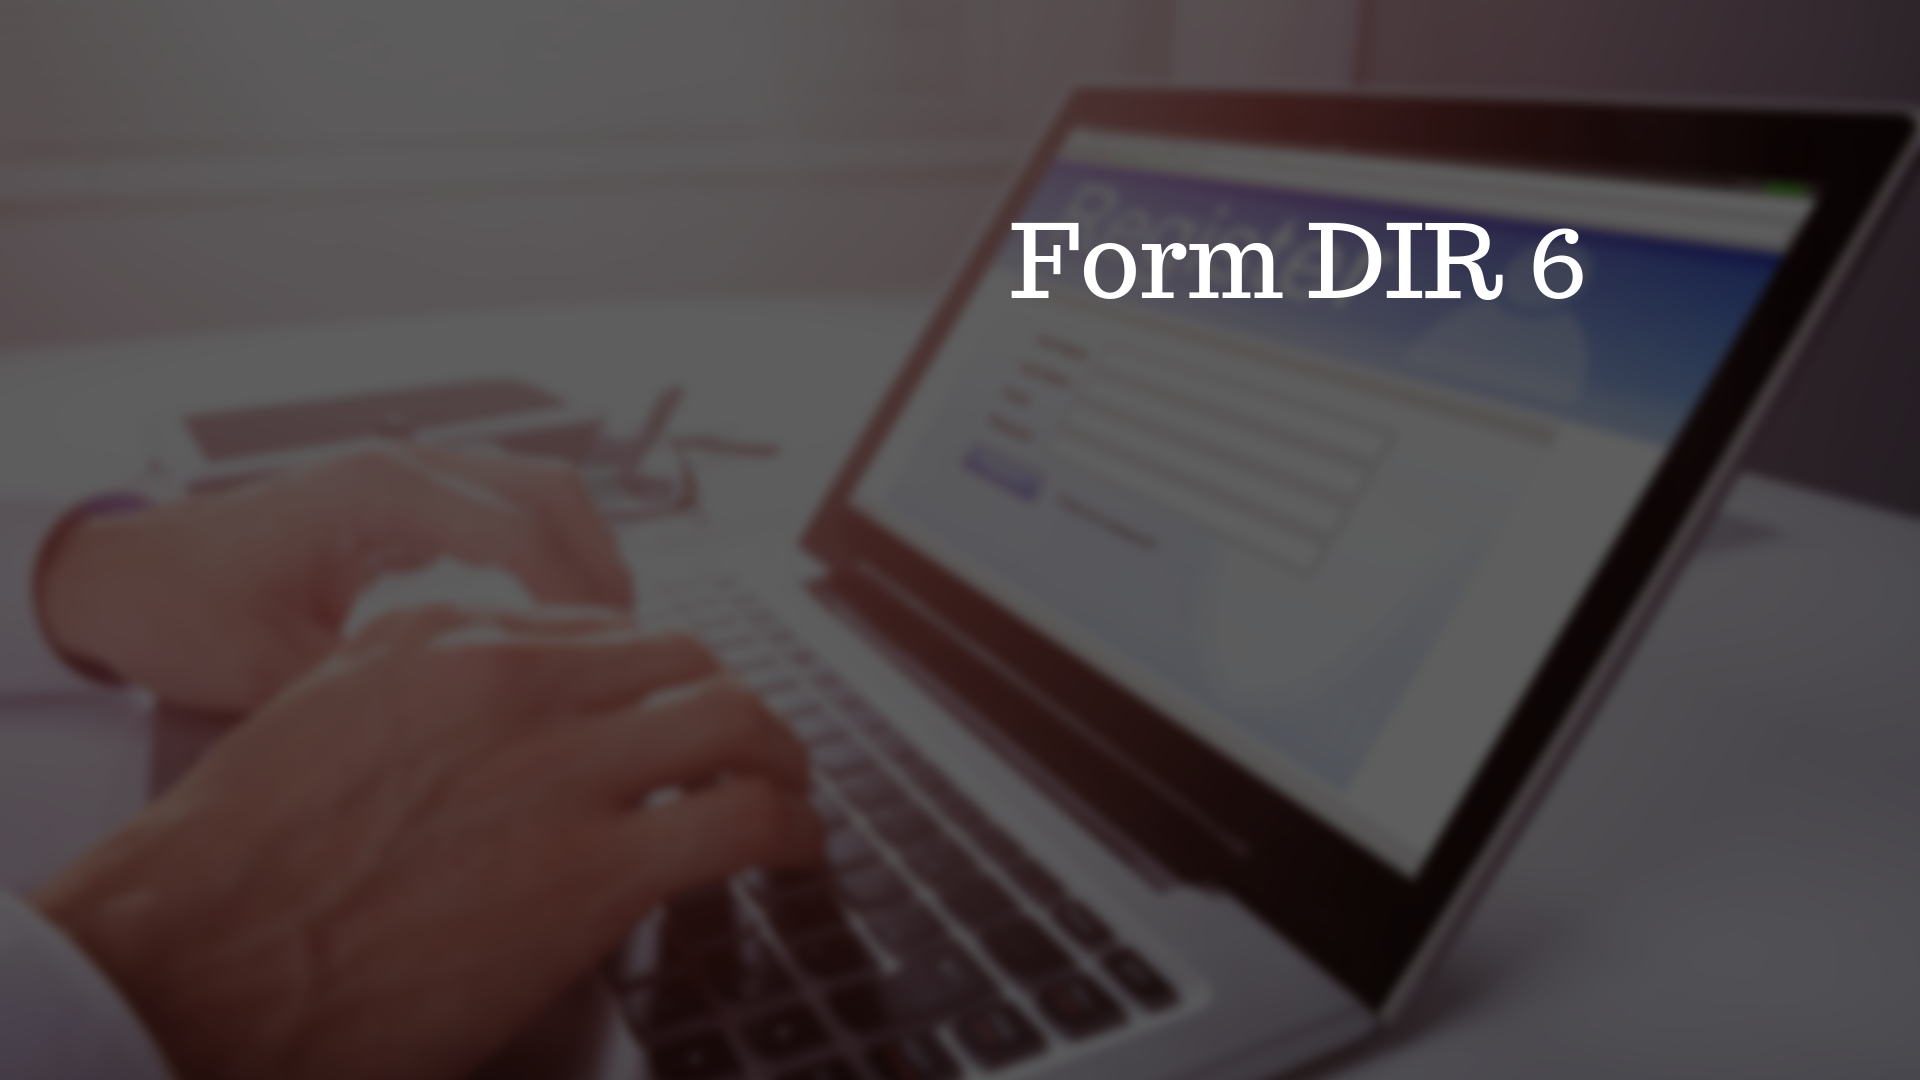 Process of filing Form DIR 6